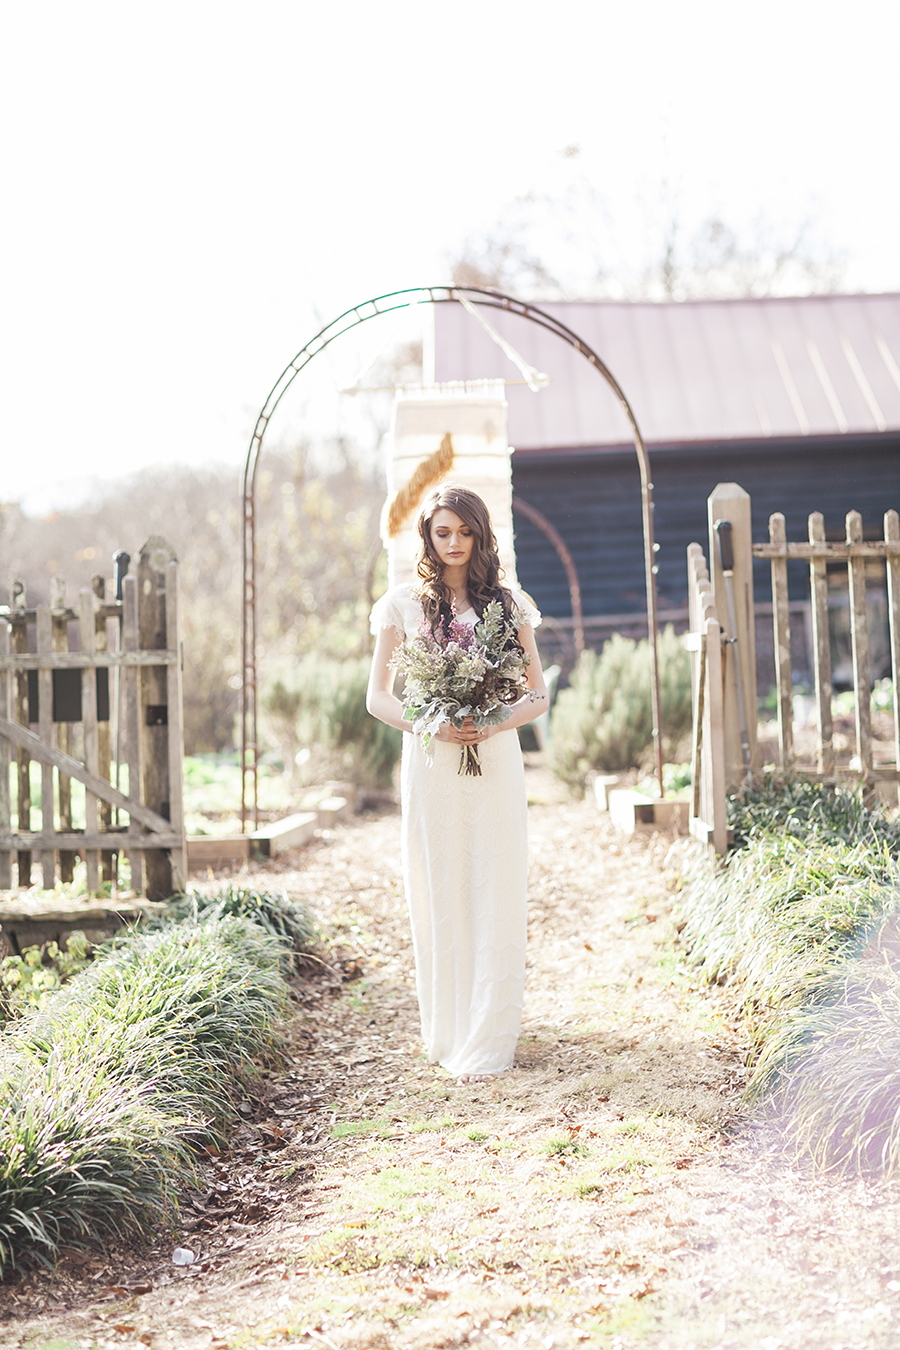 sleepy-fox-photography-daughters-of-simone-bridal-gown-styled-shoot-chelsea-and-the-city-boho-wedding-inspiration- (174).jpg